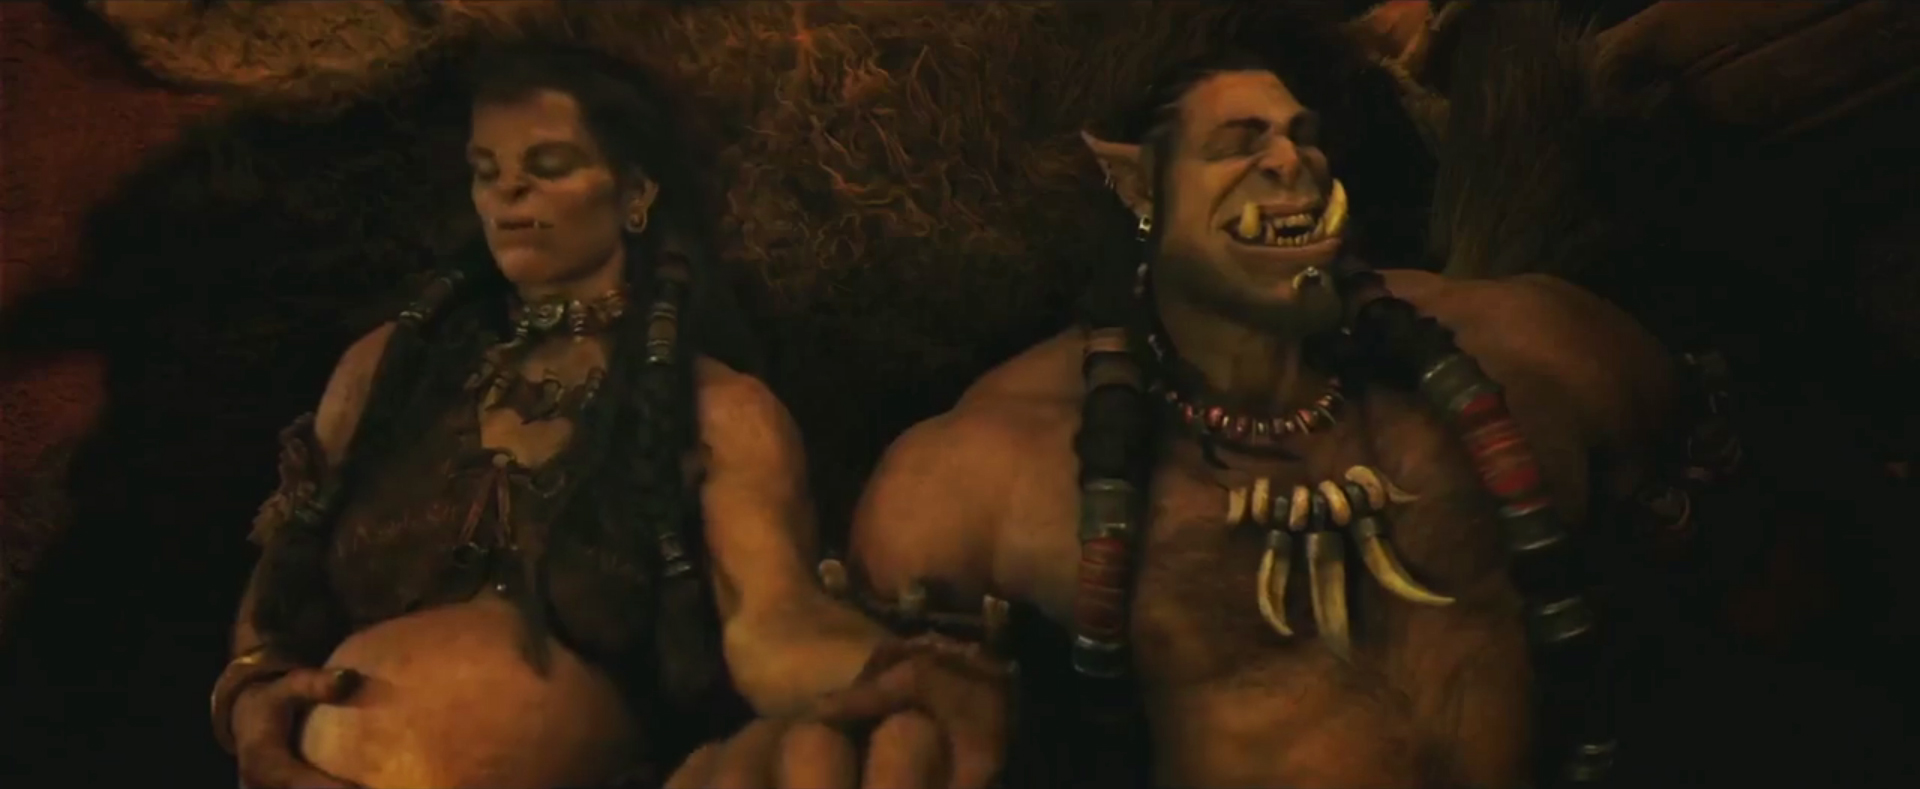 warcraft-movie-durotan-and-draka